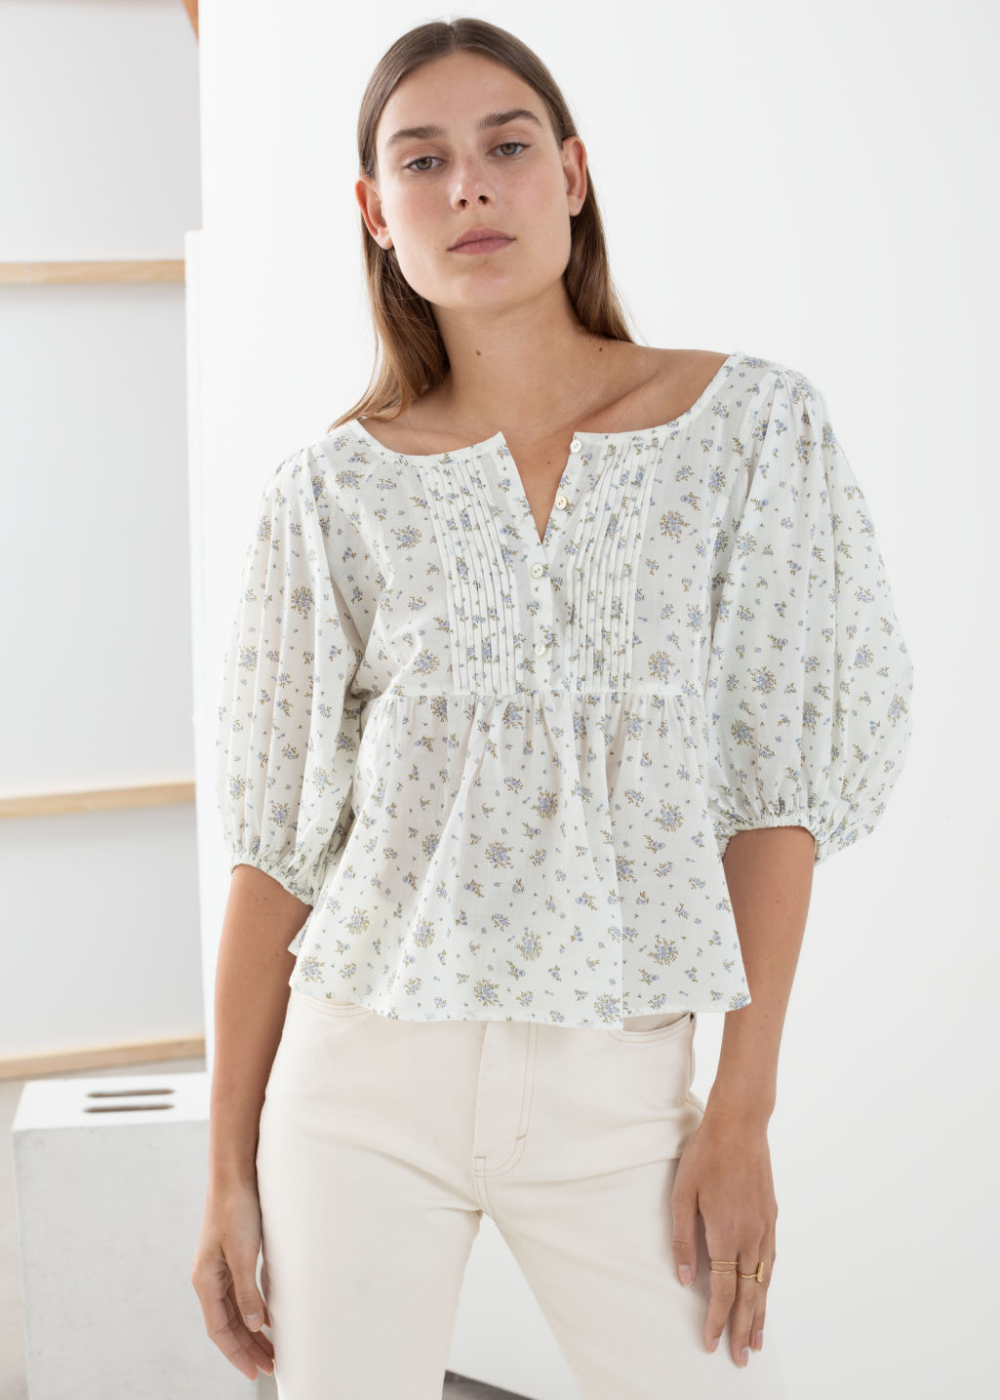 Marks /& Spencer Ivory Floral Blouse Plus Size 24 Pure Cotton with Sleeve Adjust